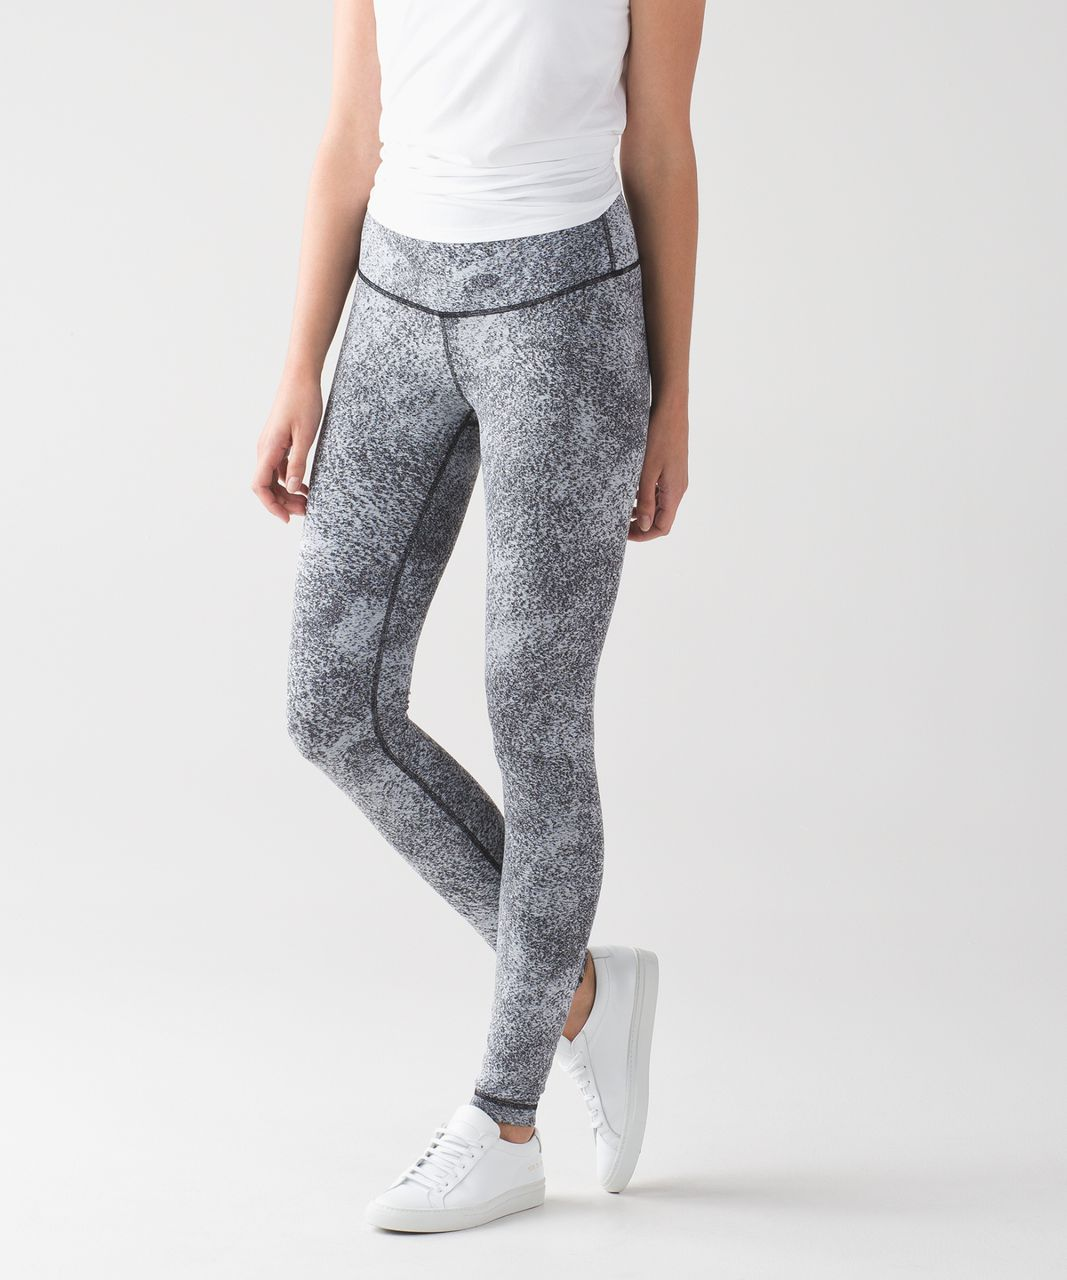 a5a0c83626b5 Lululemon Wunder Under Pant (Hi-Rise) - Luon Spray Jacquard White Black -  lulu fanatics